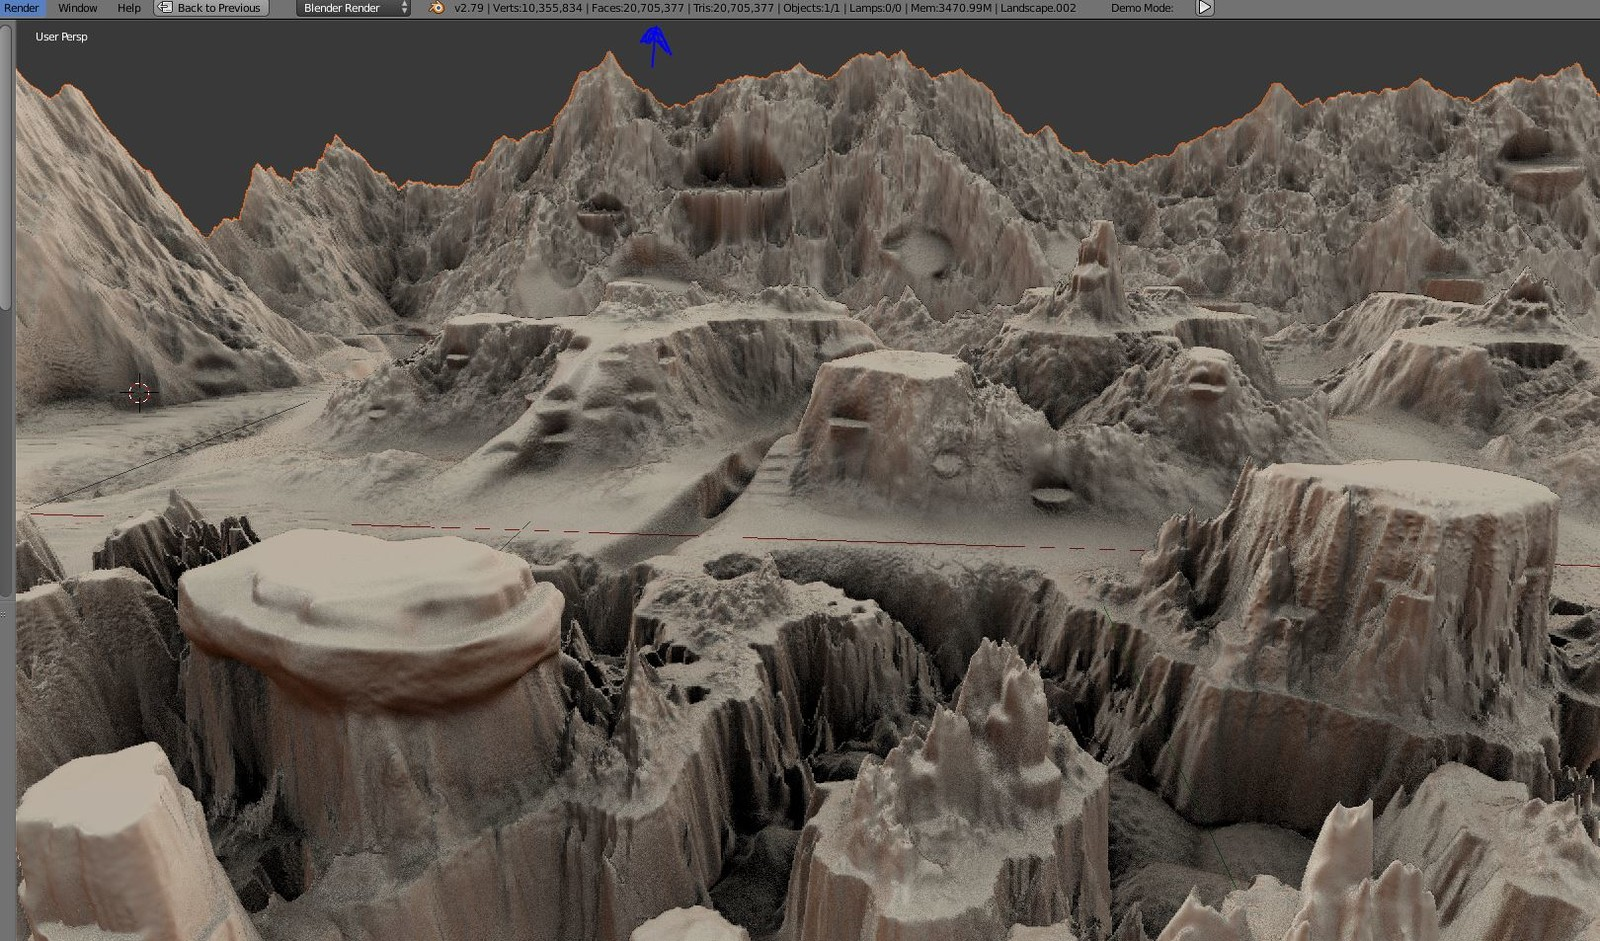 The sculpted high-poly terrain with 20,705,377 Palygones.